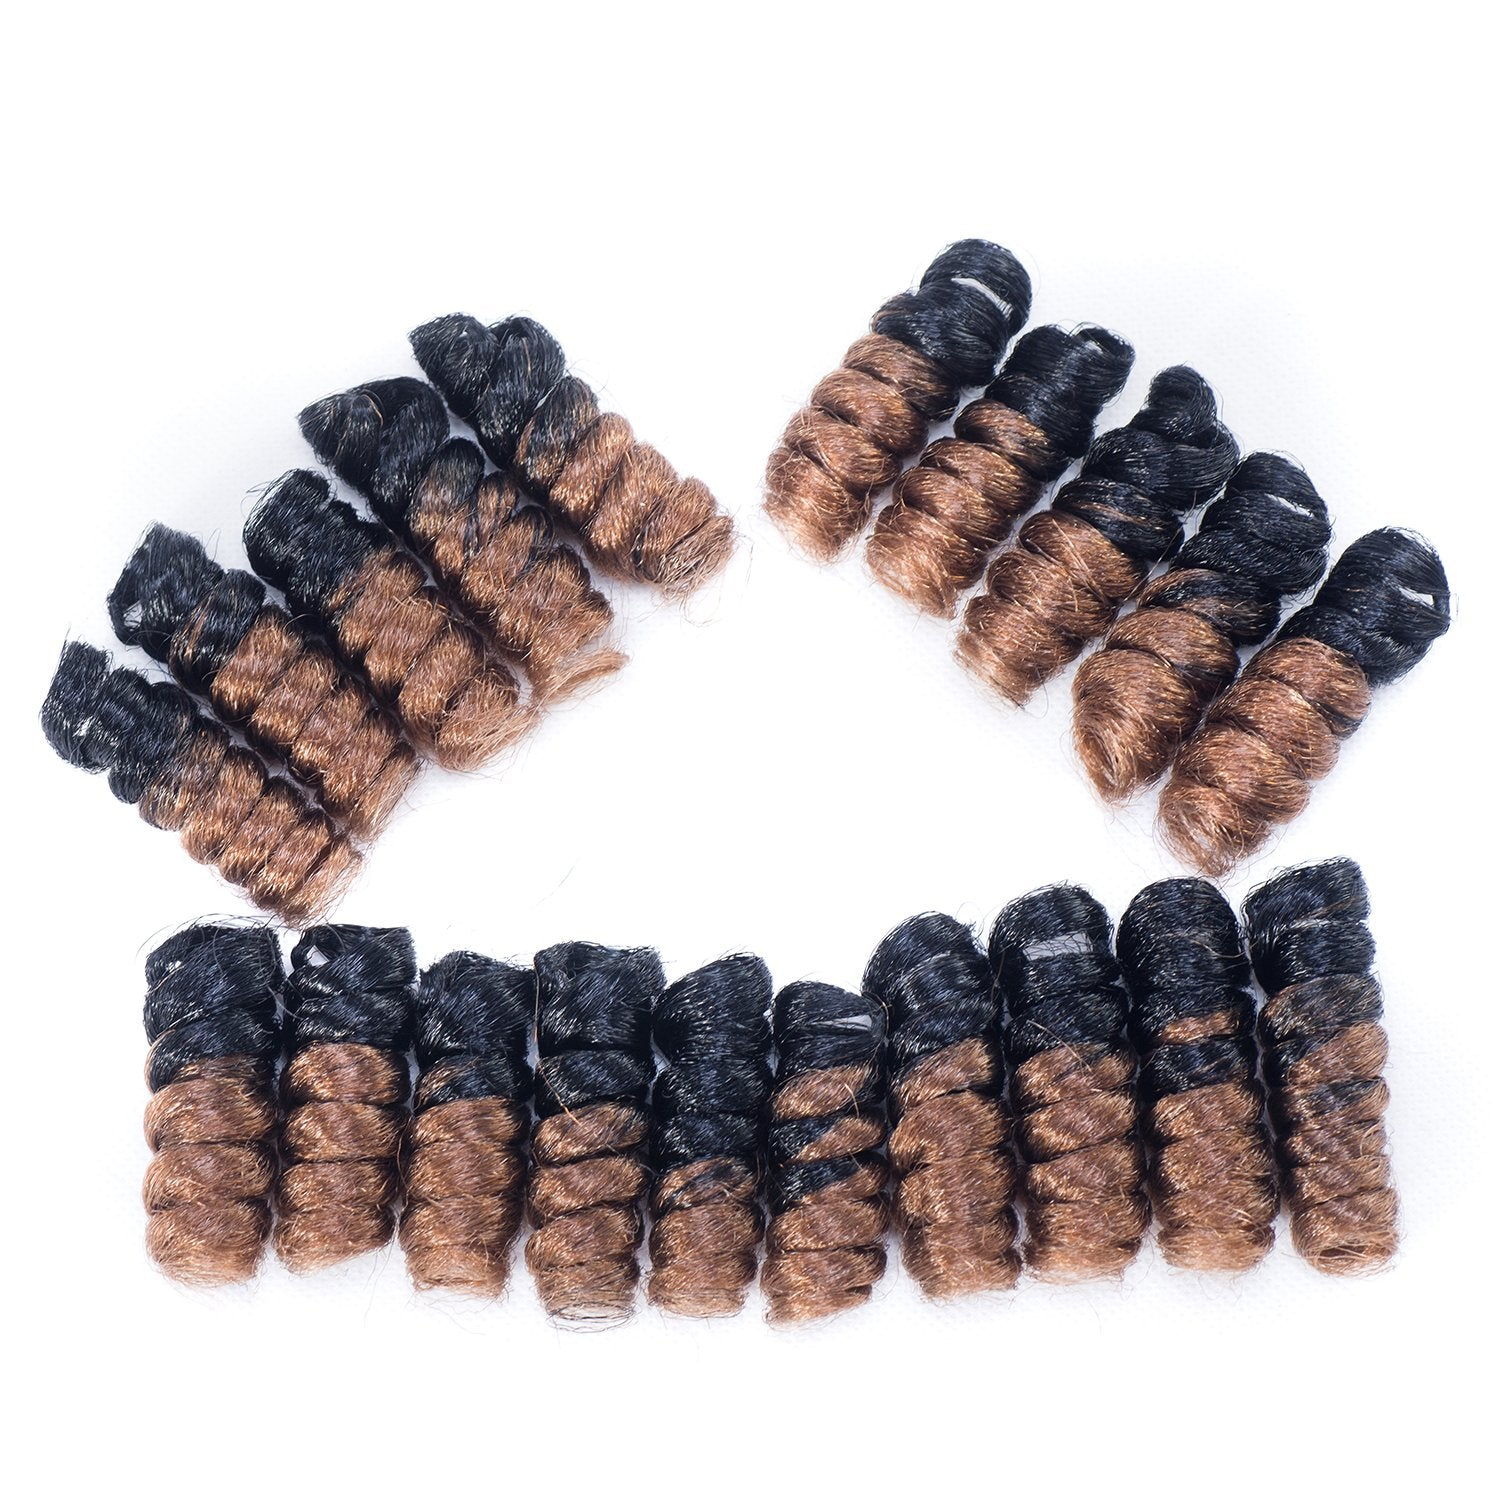 5 Packs Synthetic Saniya Curl Crochet Hair 10 inch Small Curly 20roots/pack Spiral Crochet Braids Hair (#T1B/27) #T1B/27